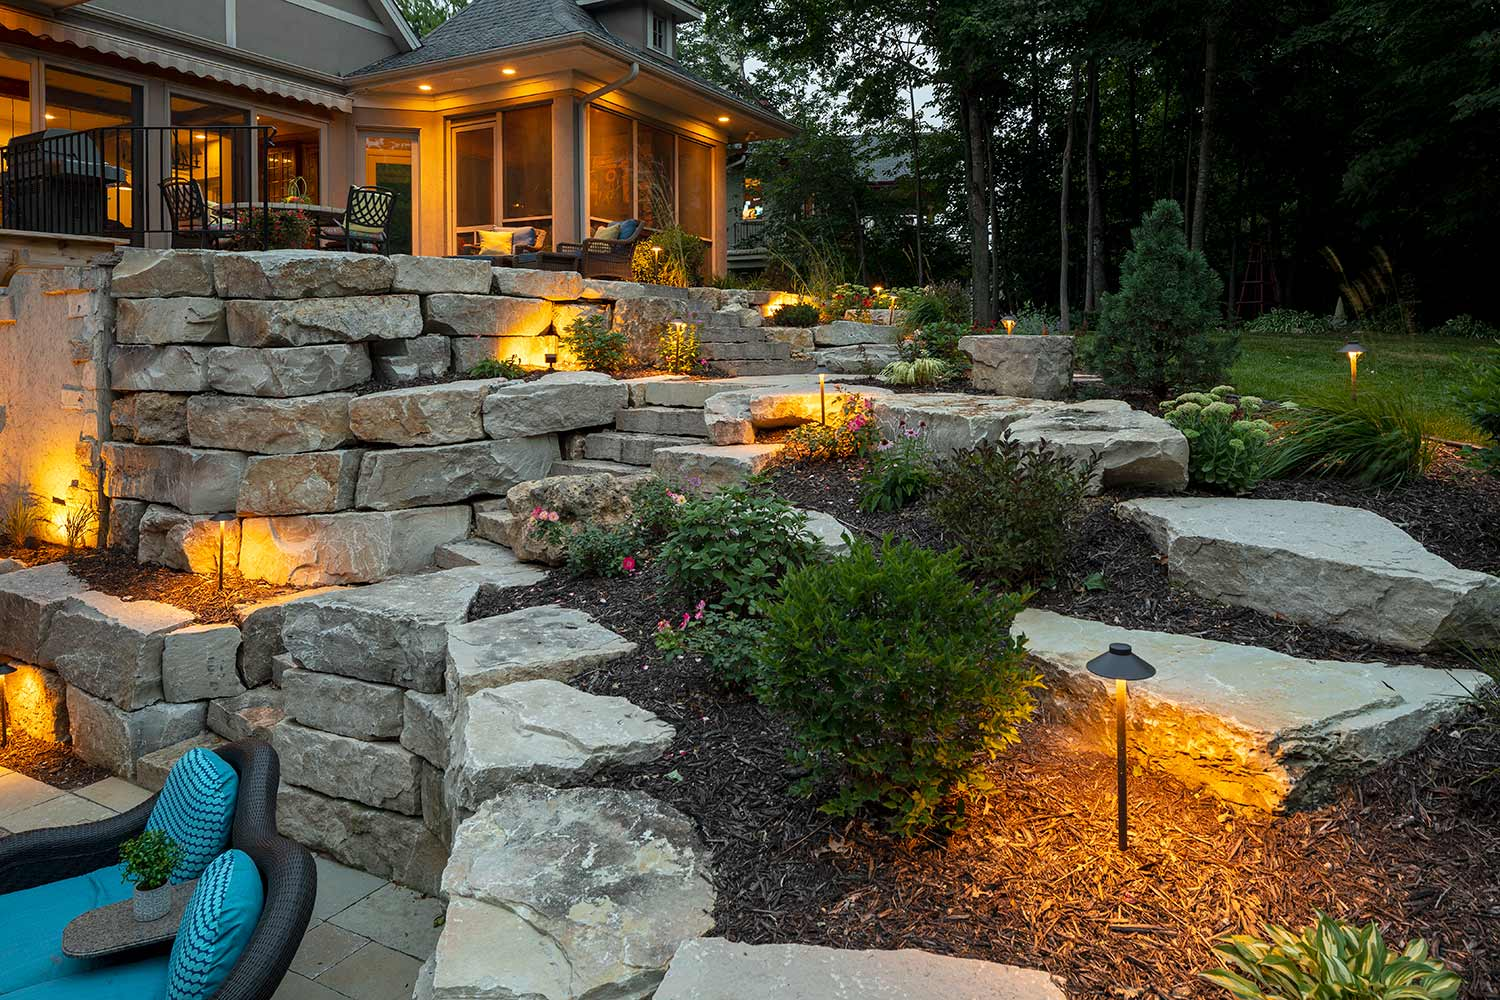 Landscape Lighting-San Marcos TX Professional Landscapers & Outdoor Living Designs-We offer Landscape Design, Outdoor Patios & Pergolas, Outdoor Living Spaces, Stonescapes, Residential & Commercial Landscaping, Irrigation Installation & Repairs, Drainage Systems, Landscape Lighting, Outdoor Living Spaces, Tree Service, Lawn Service, and more.